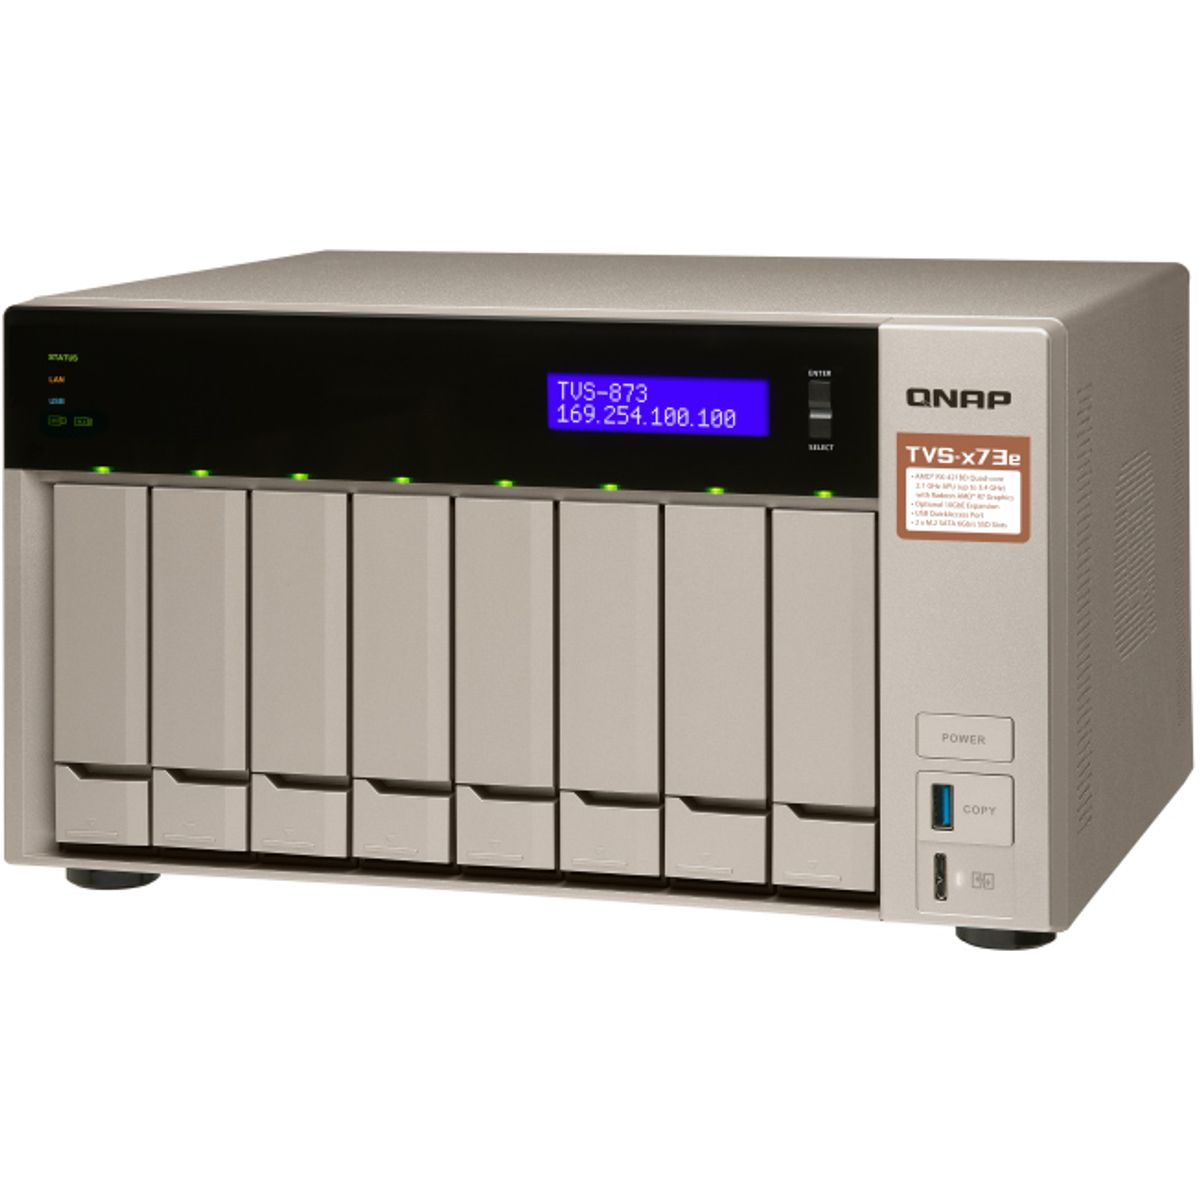 Qnap TVS-873e-4G 8-Bay 30TB Bundle mit 3x 10TB IronWolf ST10000VN0008